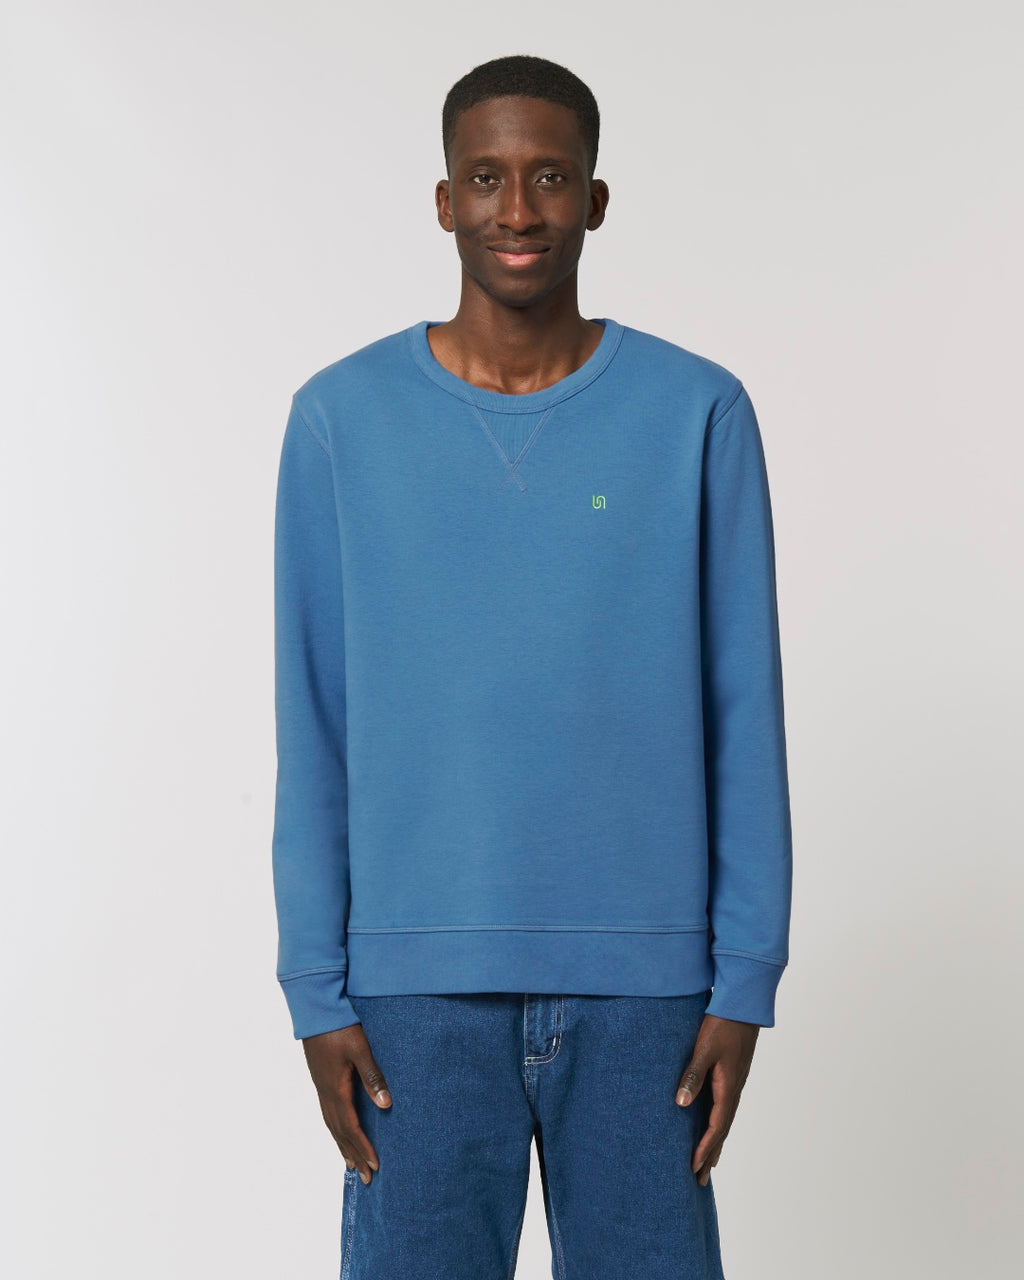 The Old Fashioned, sustainable, vegan and plastic free sweatshirt - colour: blue